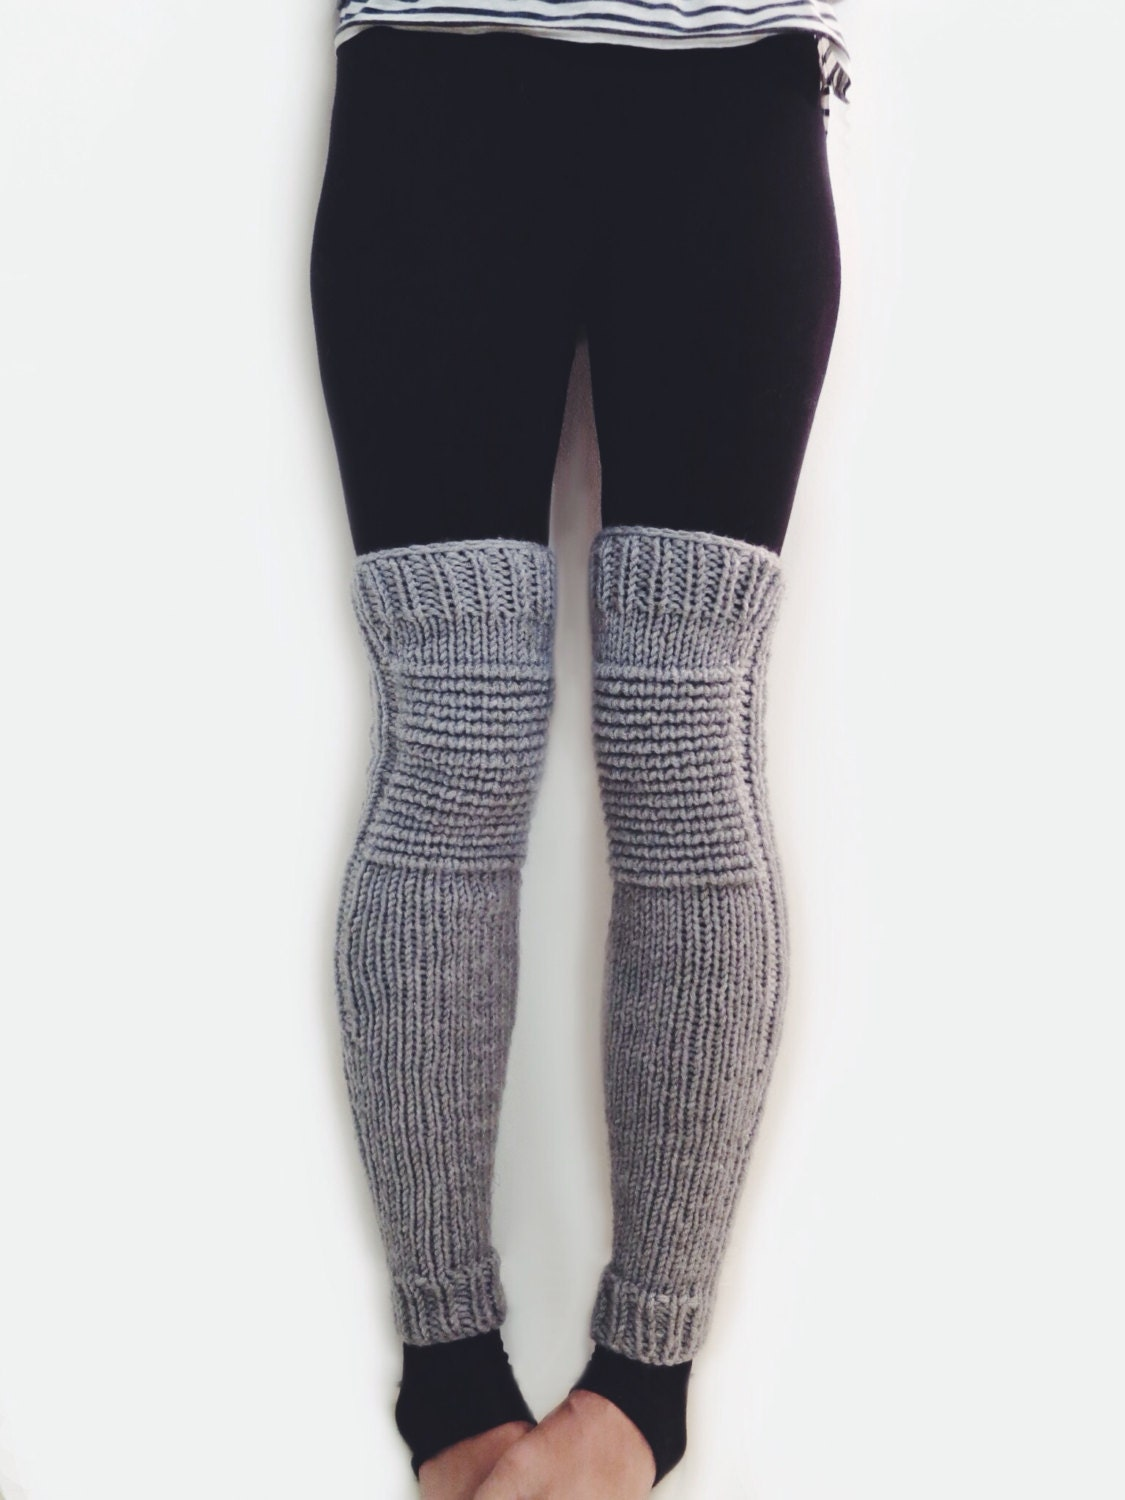 Knit Leg Warmers Motorcycle Padded Quilted By TwoOfWandsShop